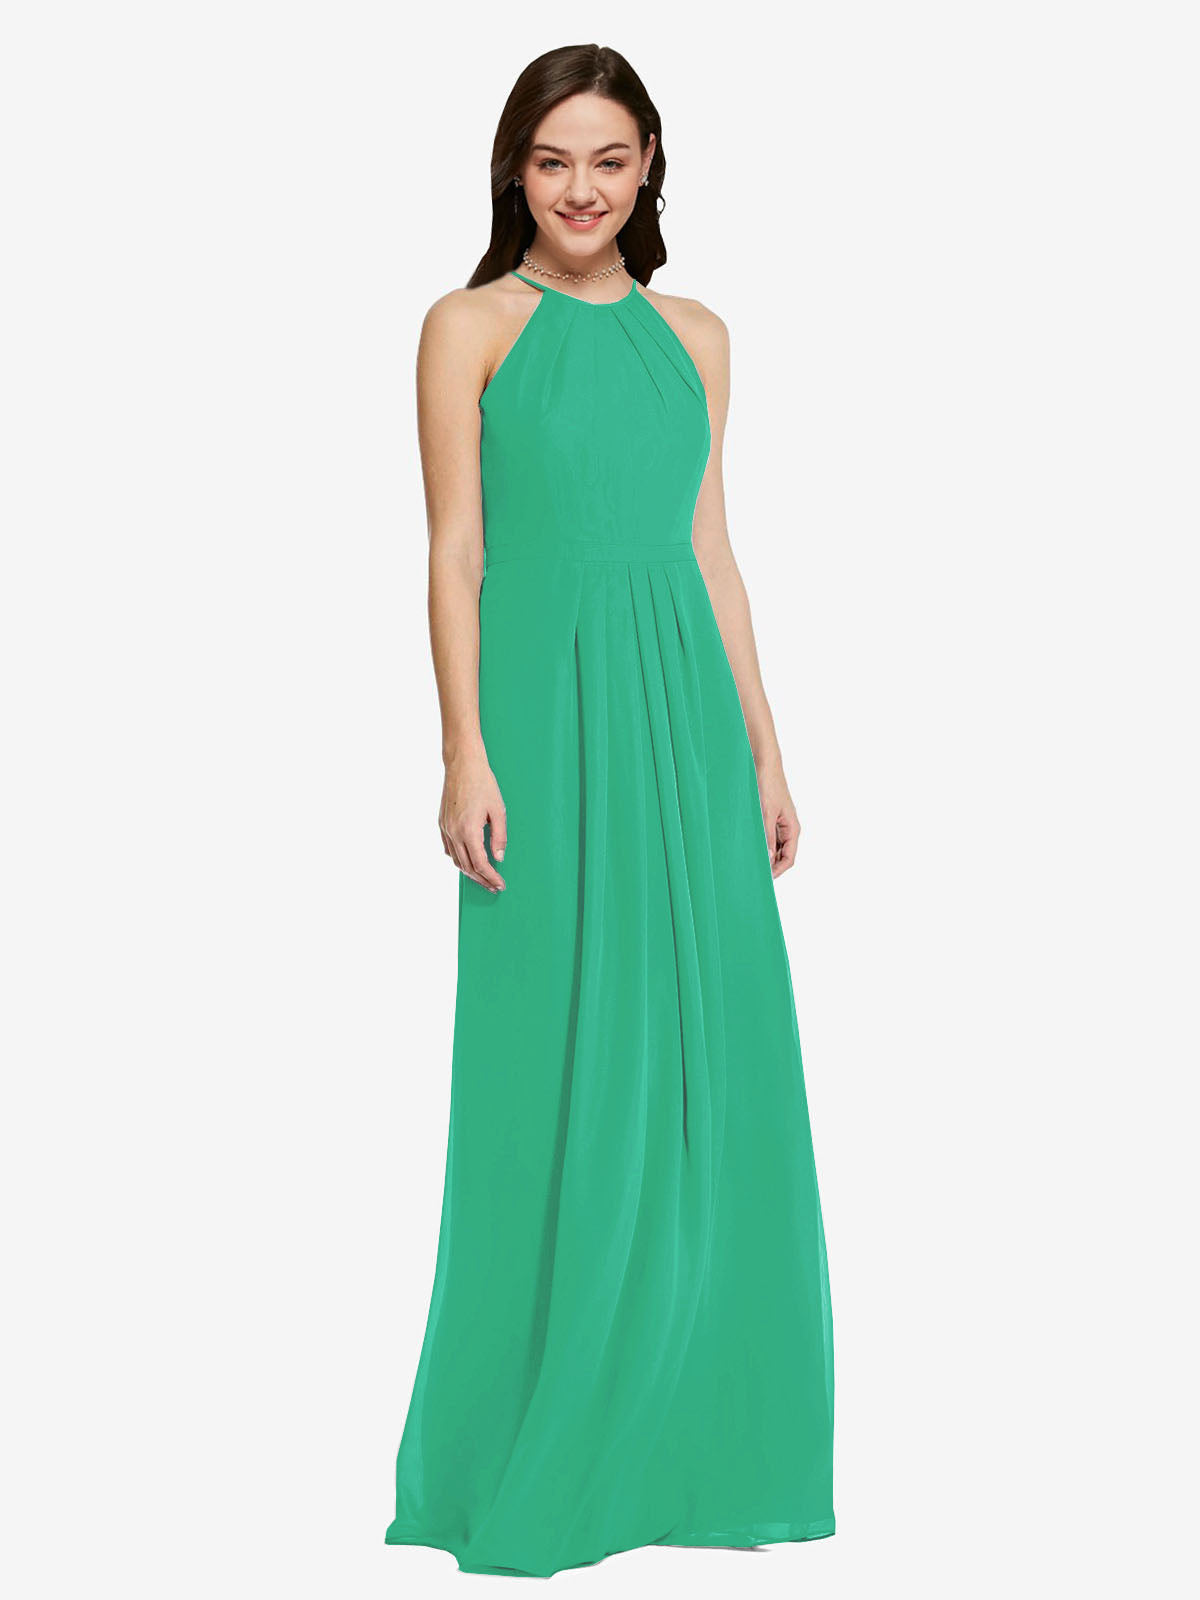 Long Sheath High Neck Halter Sleeveless Emerald Green Chiffon Bridesmaid Dress Koloti